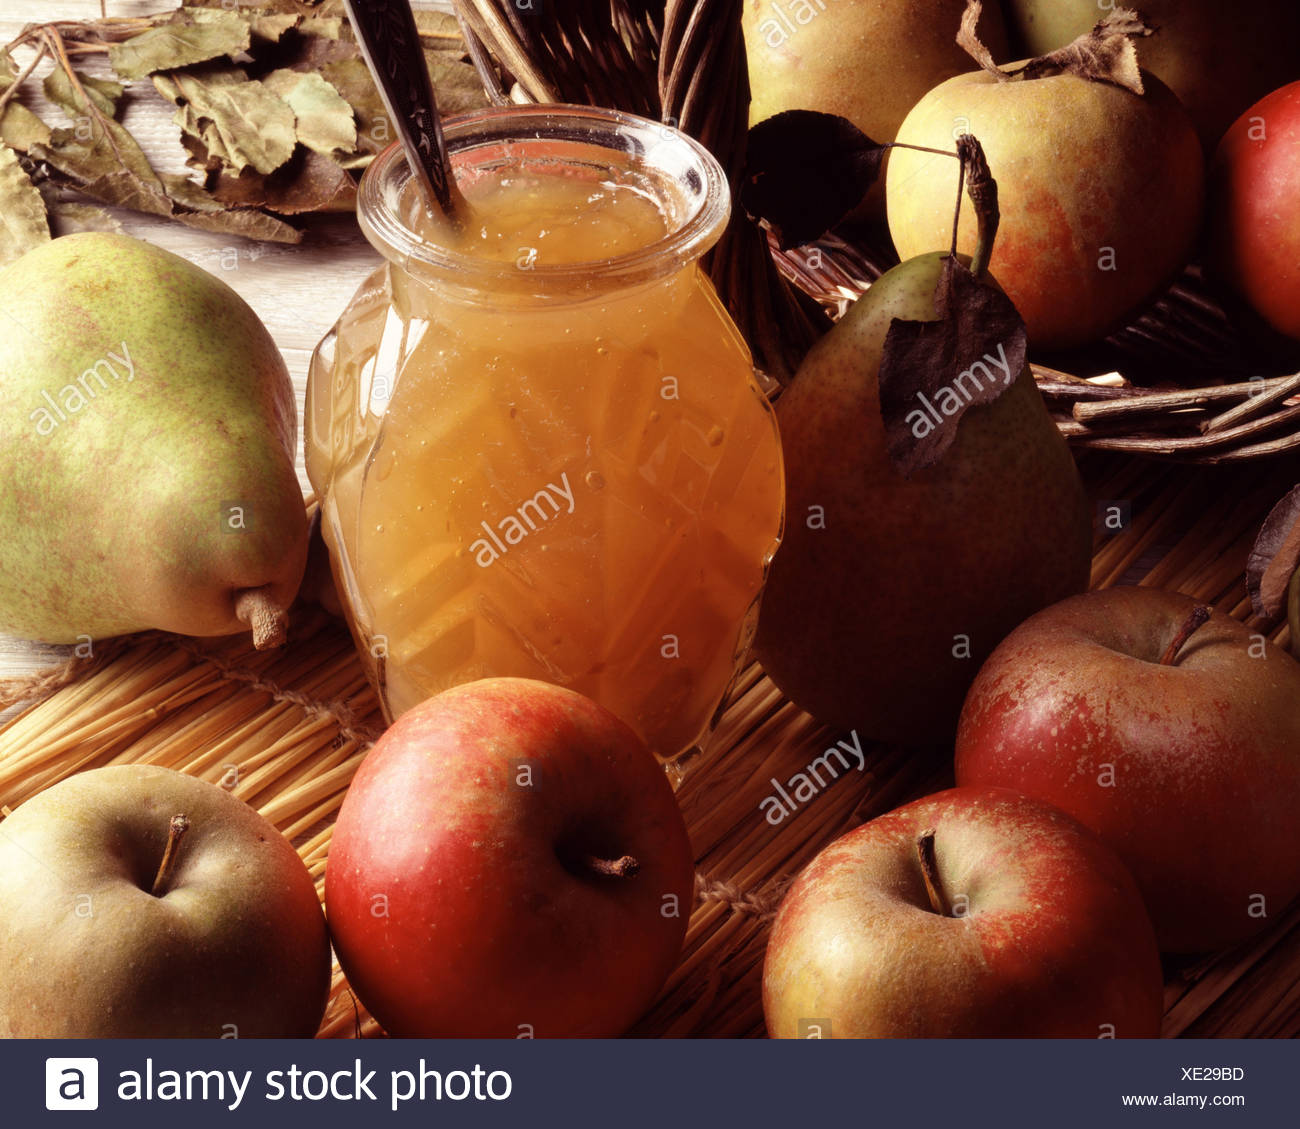 Jar of marmalade with pip fruit Stock Photo